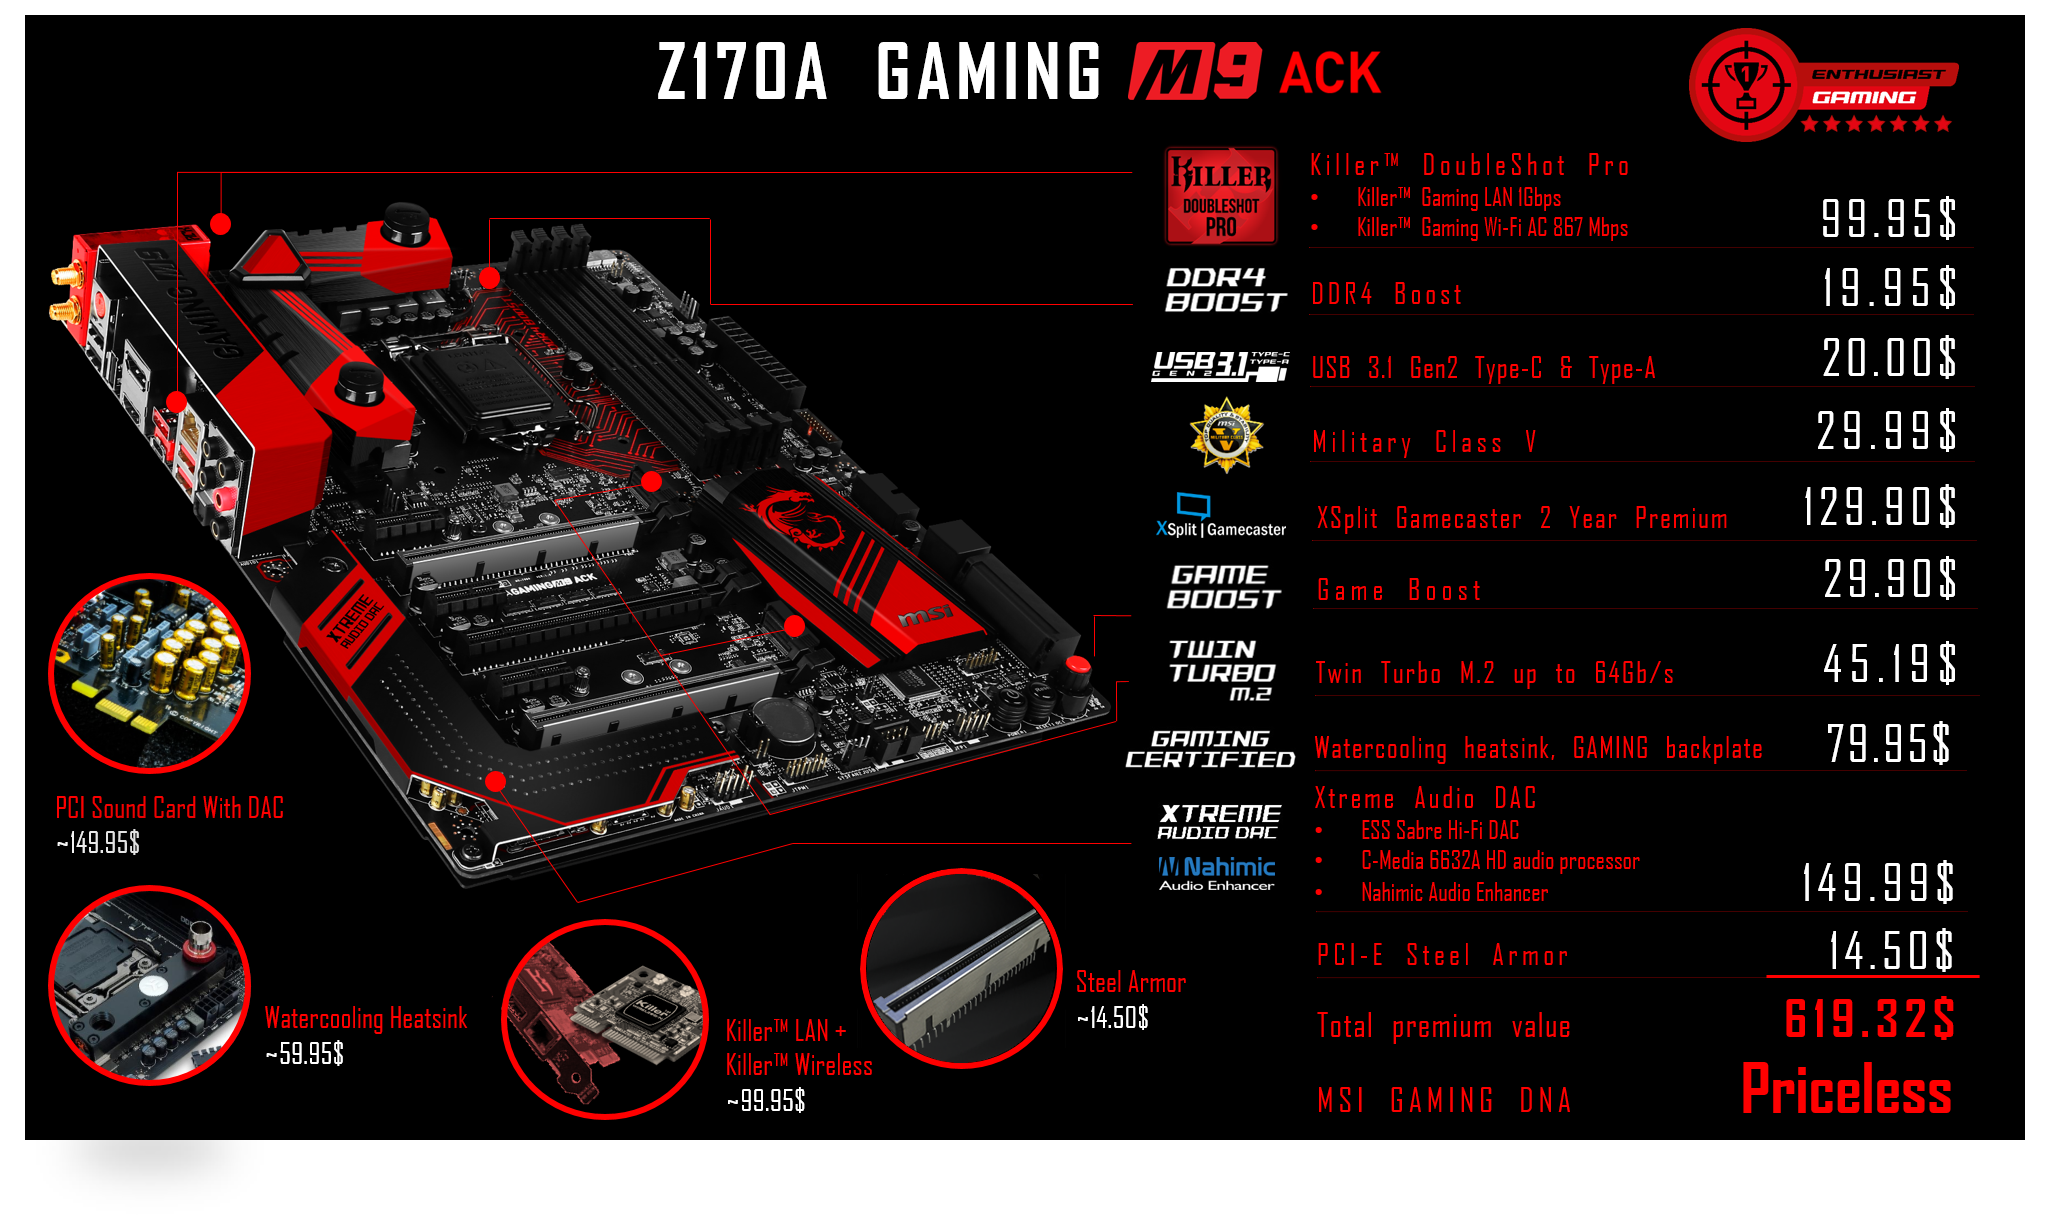 The added value of MSI GAMING features